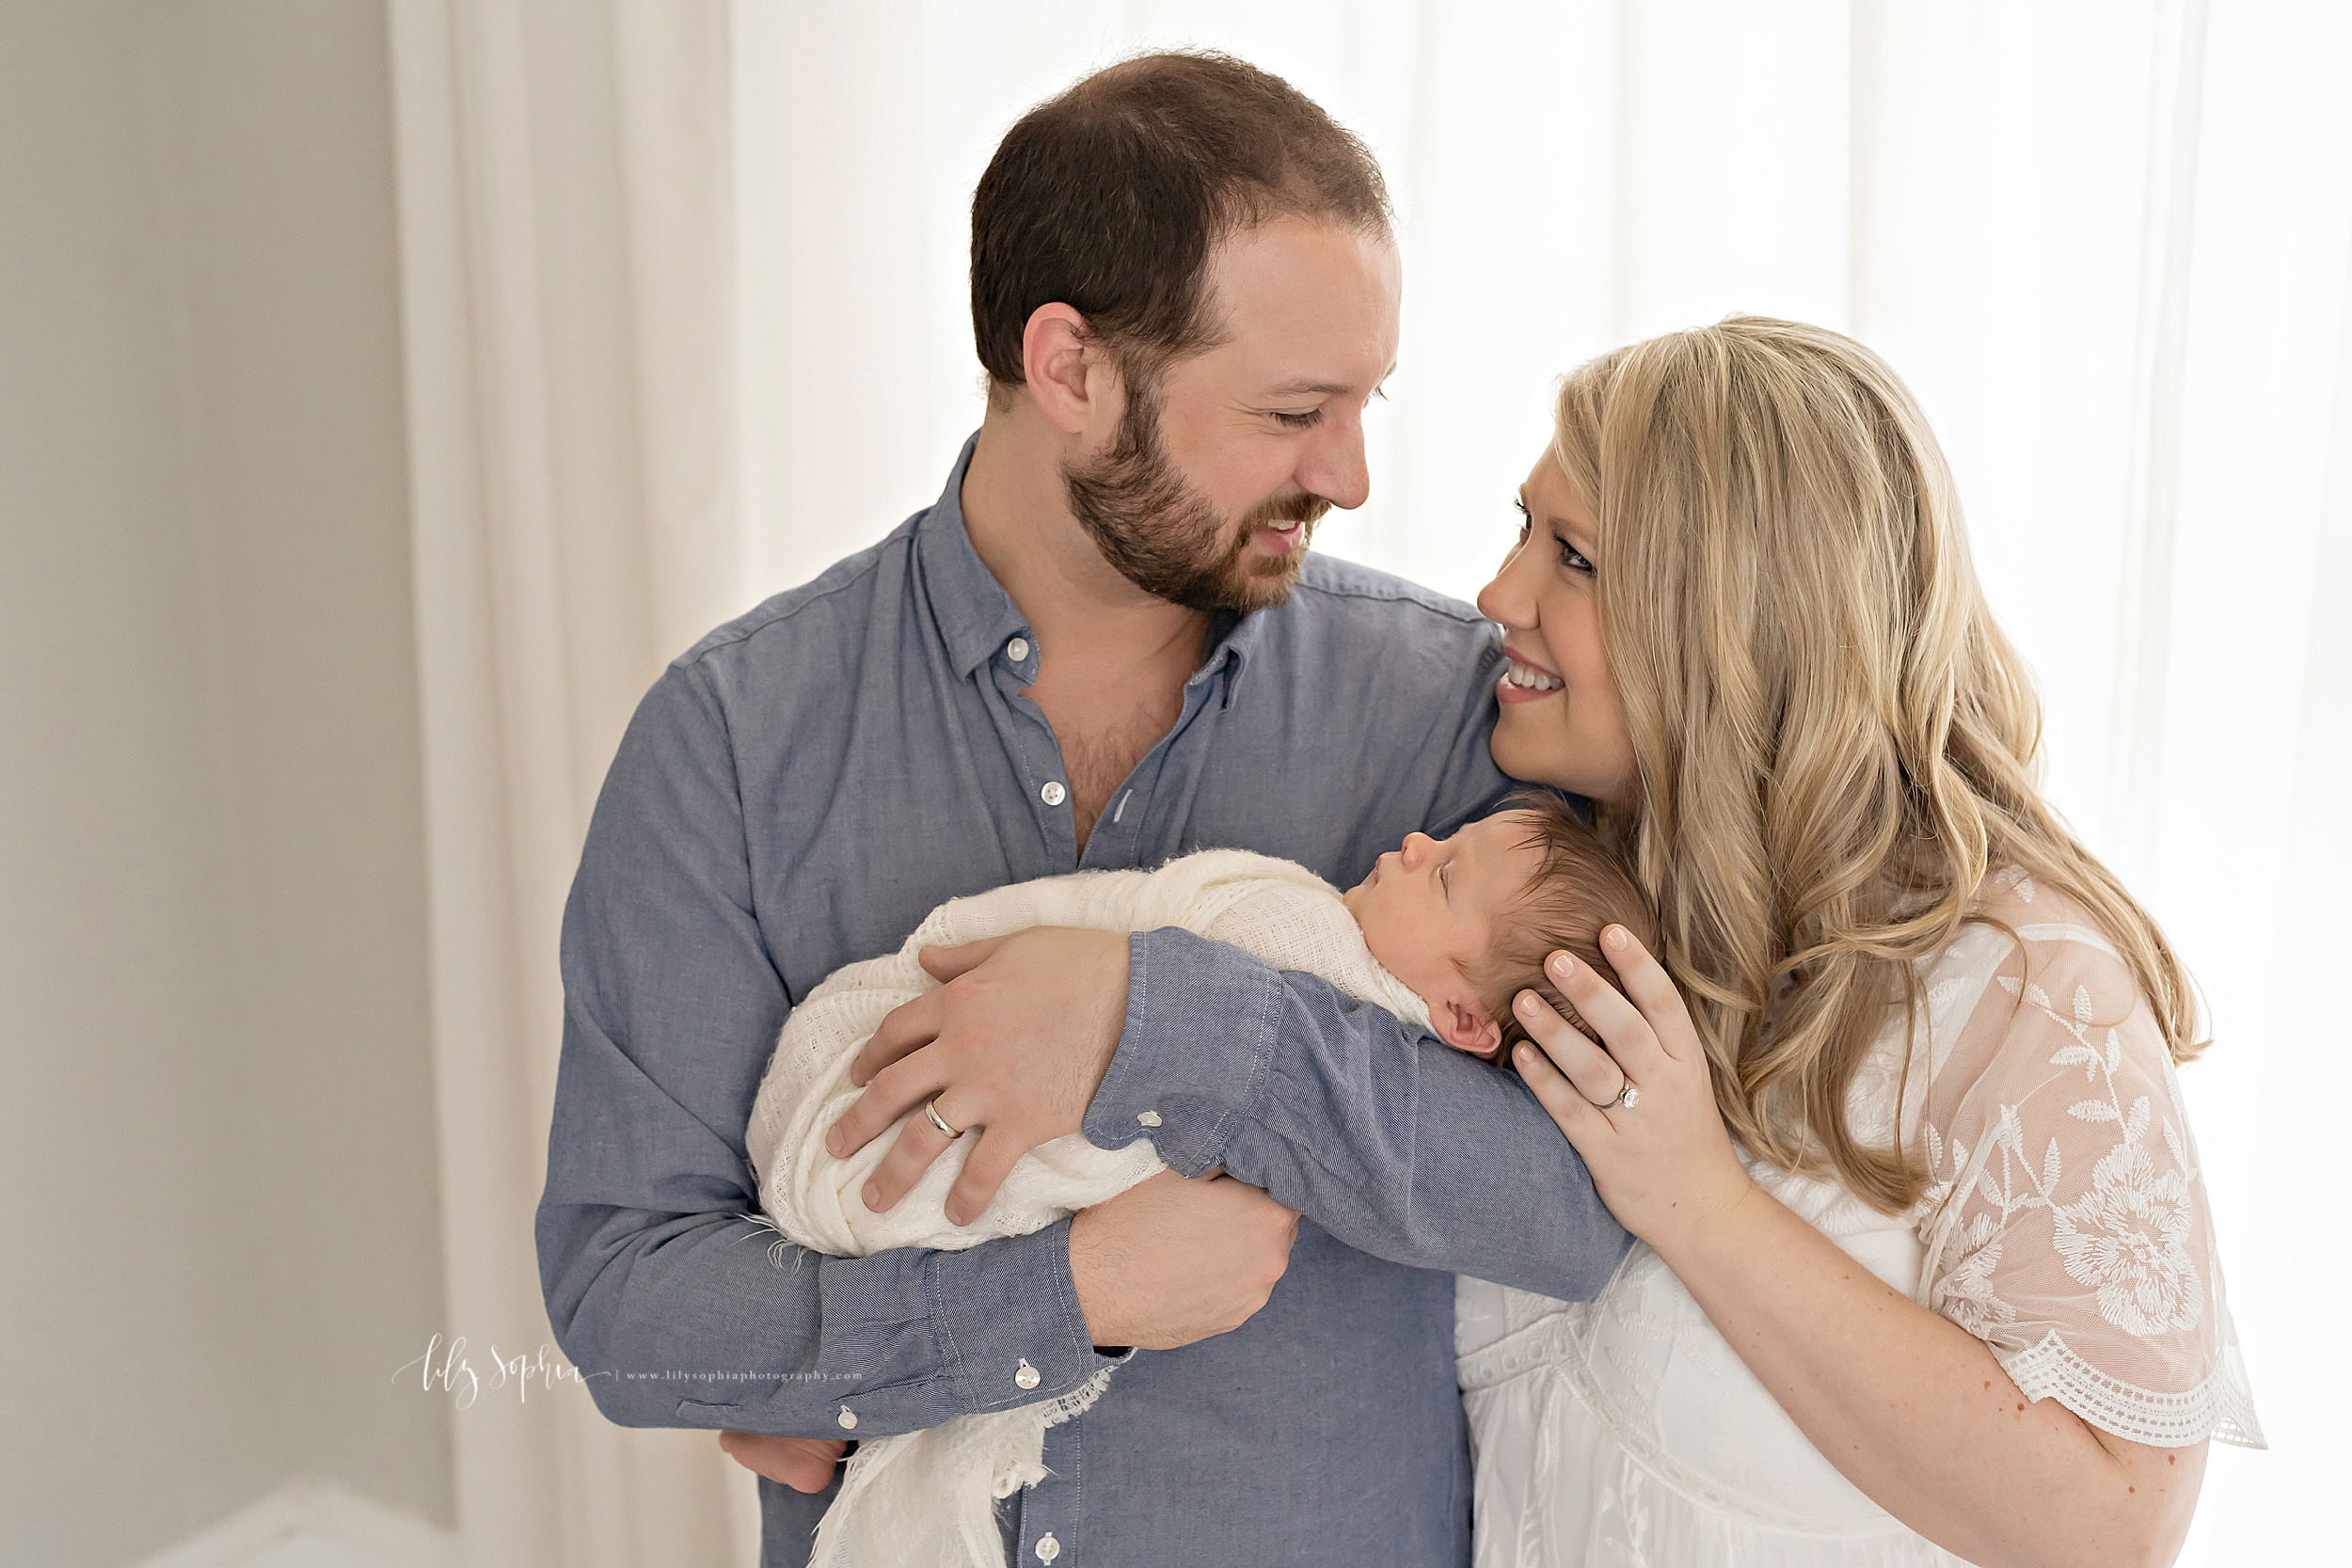 Image of parents of a newborn boy as they stand in a natural light studio.  Dad is wearing a chambray long sleeved shirt and mom is wearing a cream dress.  The husband and wife are smiling and looking one another in the eye.  Dad is cradling his sleeping newborn son in his arms while mom is holding the newborn's head with her left hand.